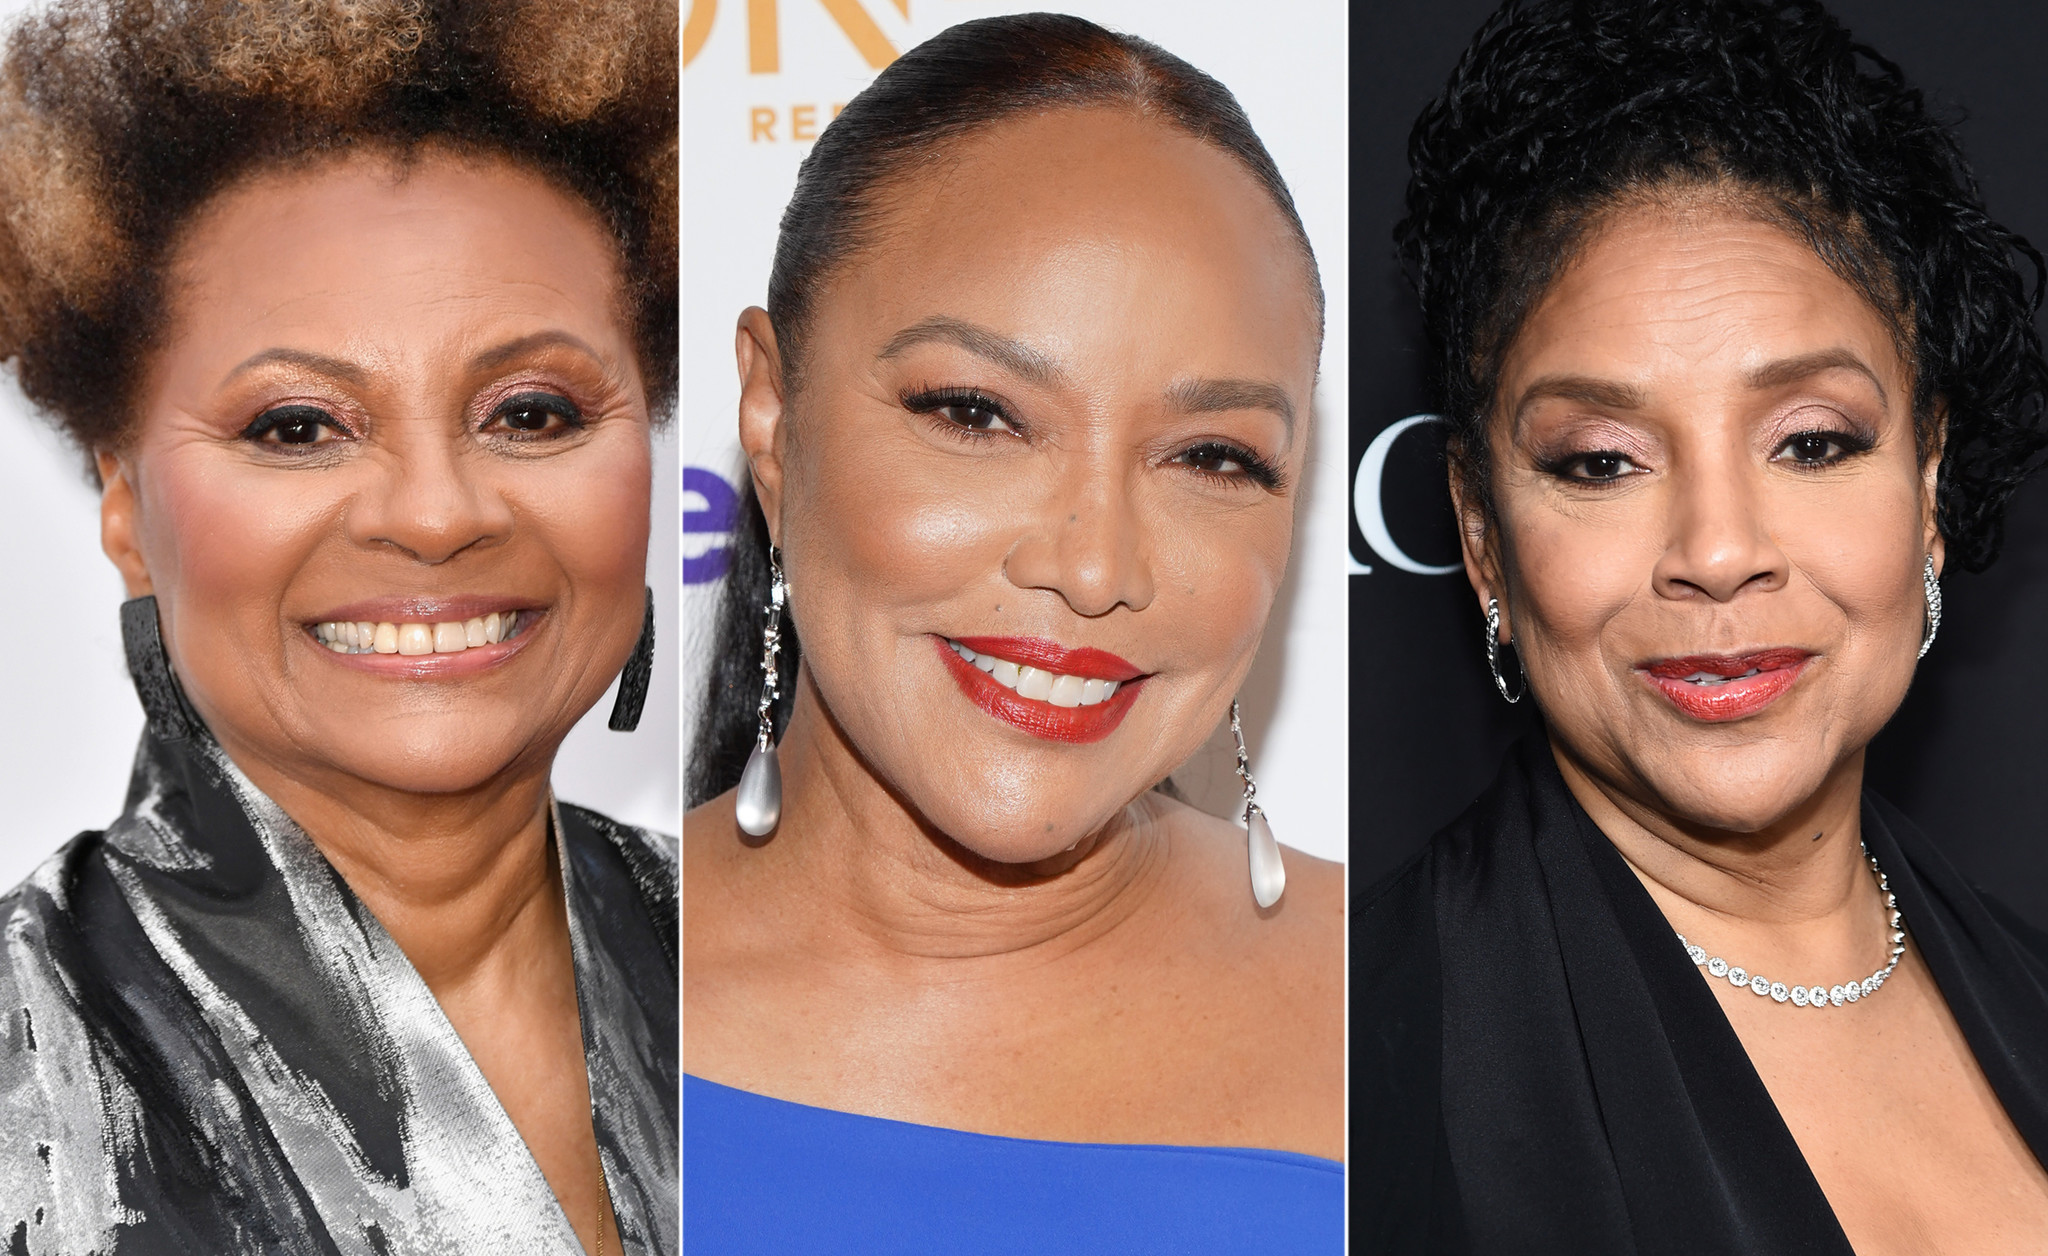 Leslie Uggams and Lynn Whitfield to star in 'Blue' directed by Phylicia Rashad at Apollo Theater this spring